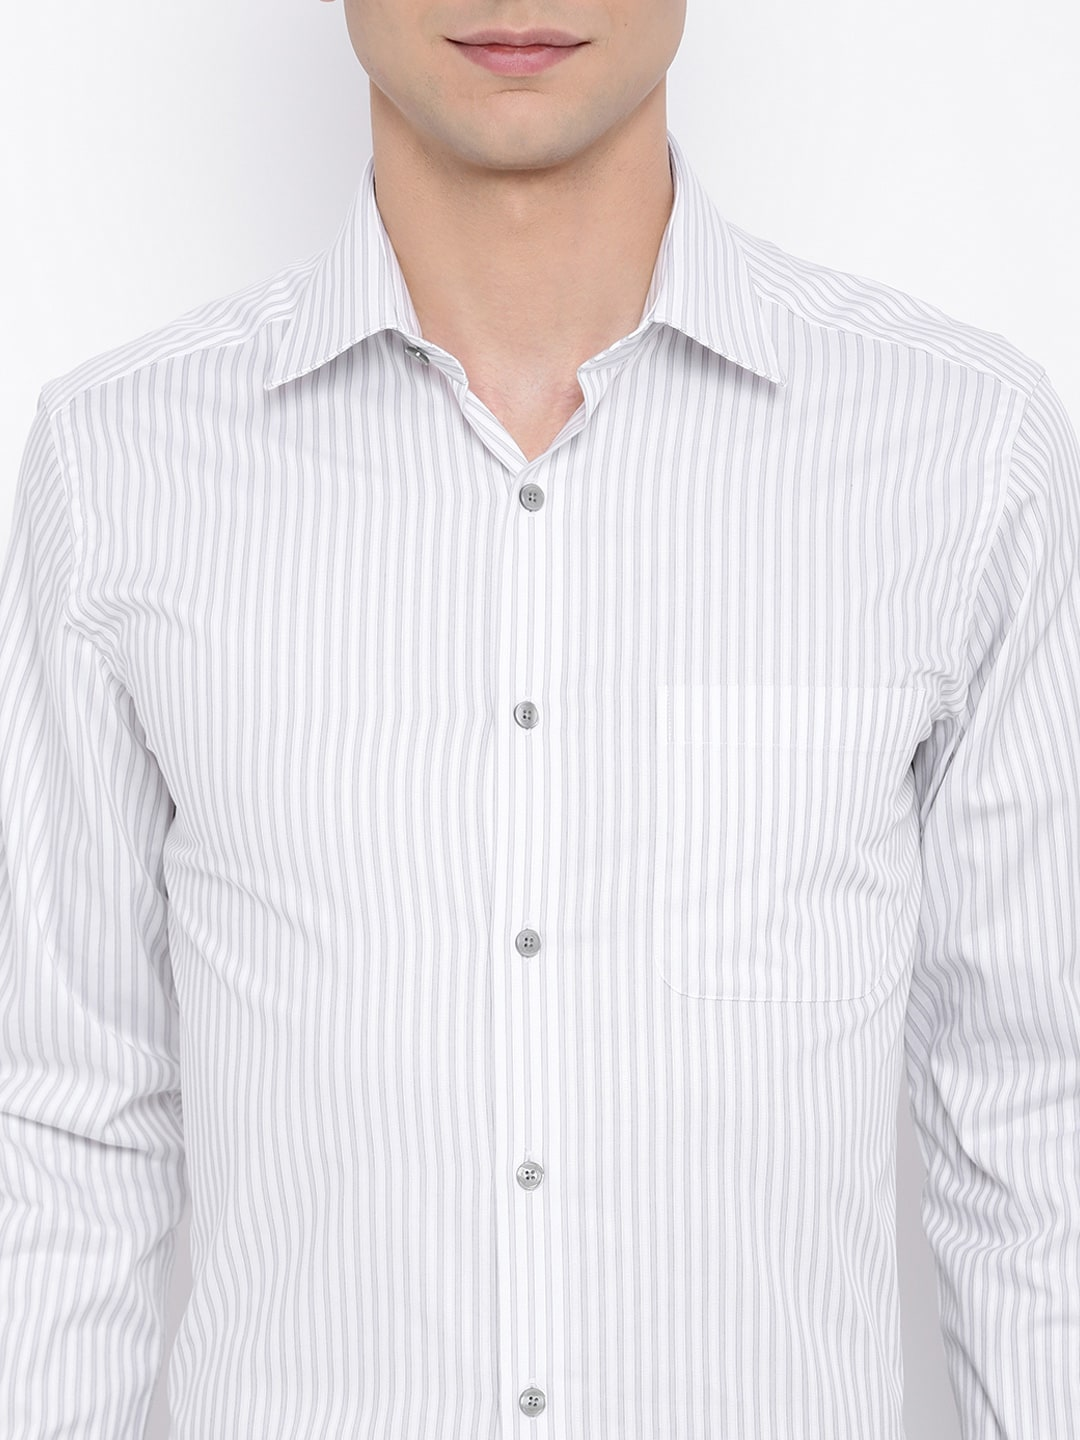 Collection Mens Off White Dress Shirt Pictures - Fashion Trends ...